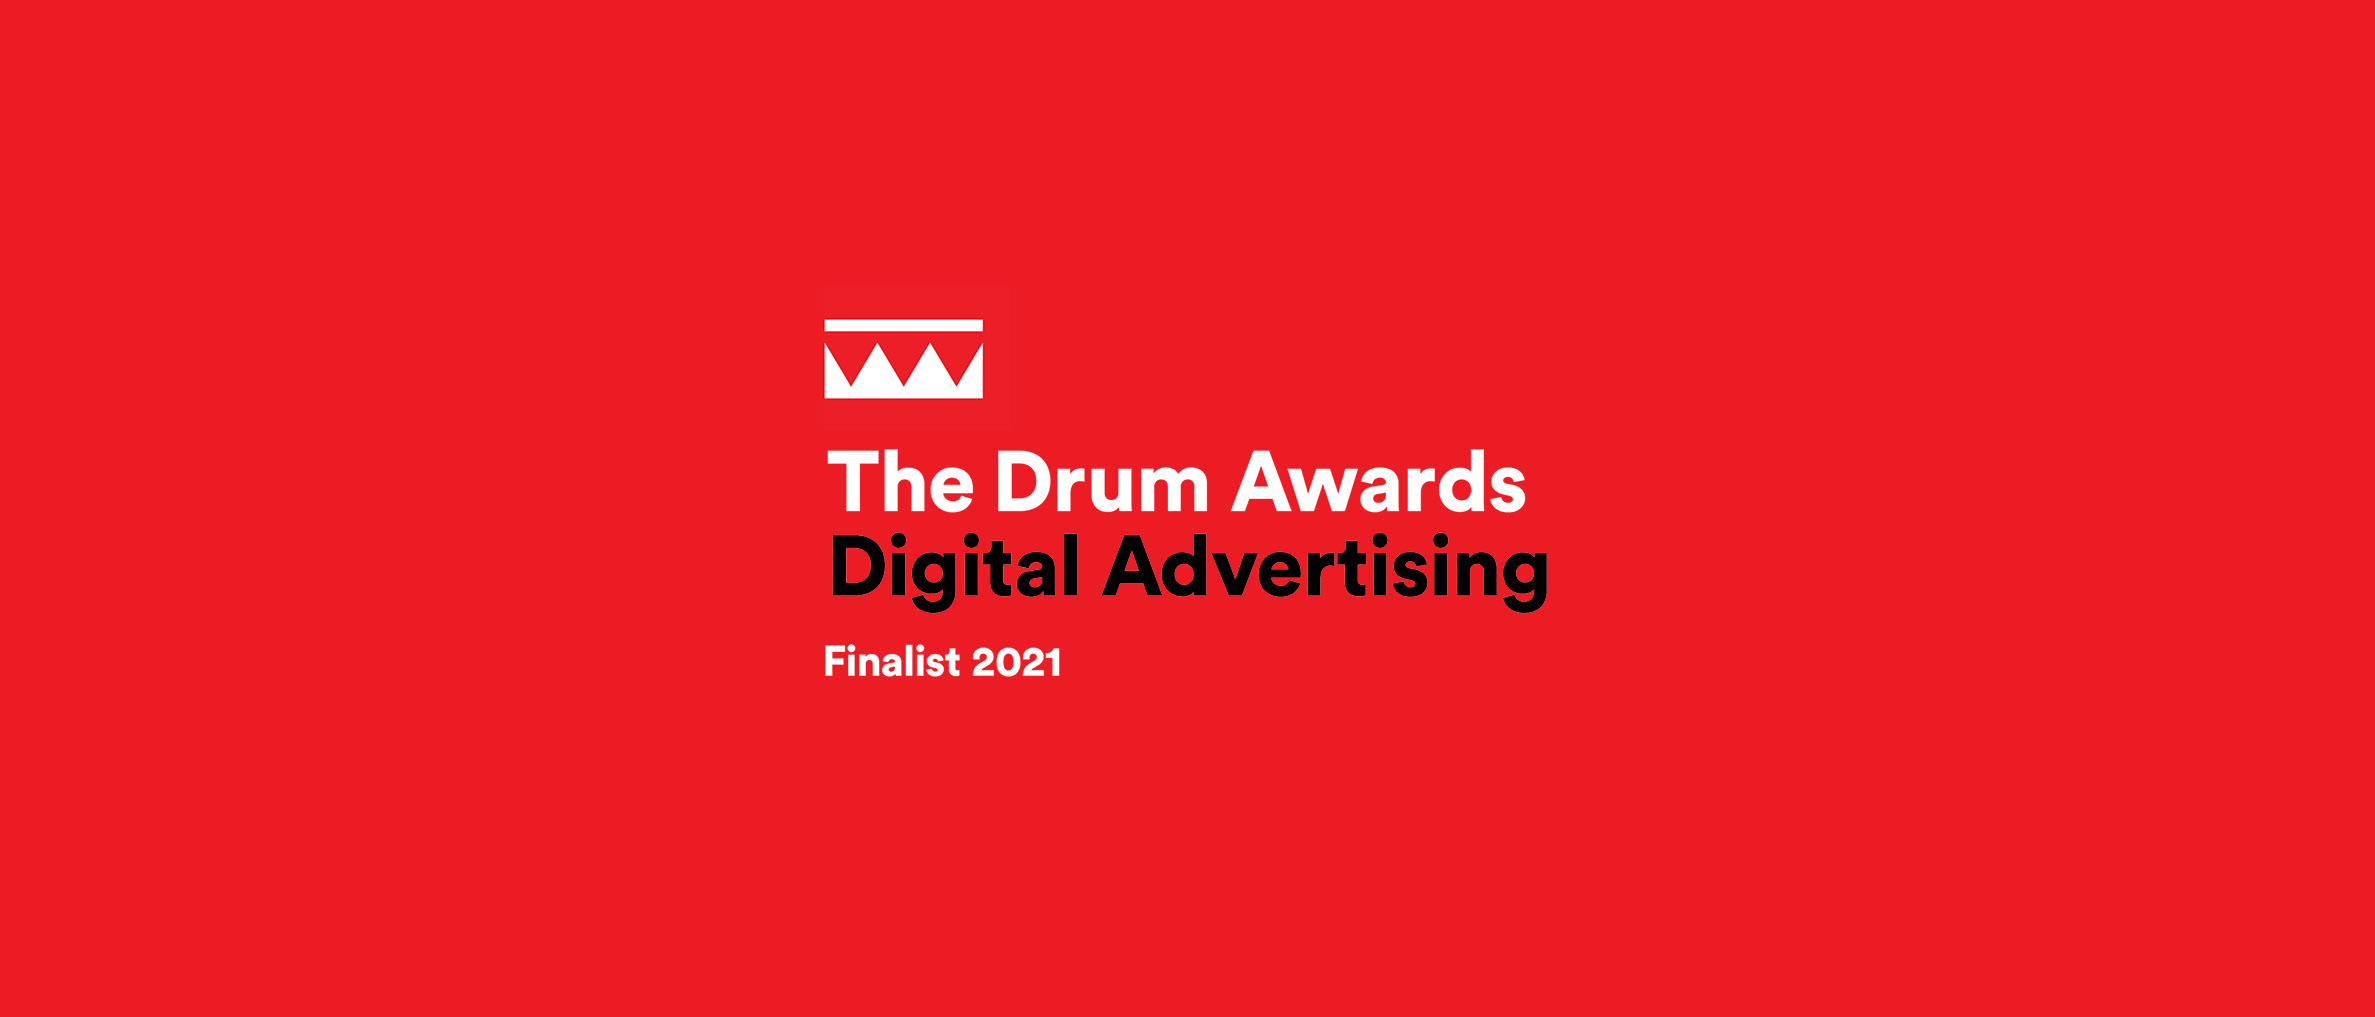 Captify is nominated for three categories at The Drum Digital Advertising Awards